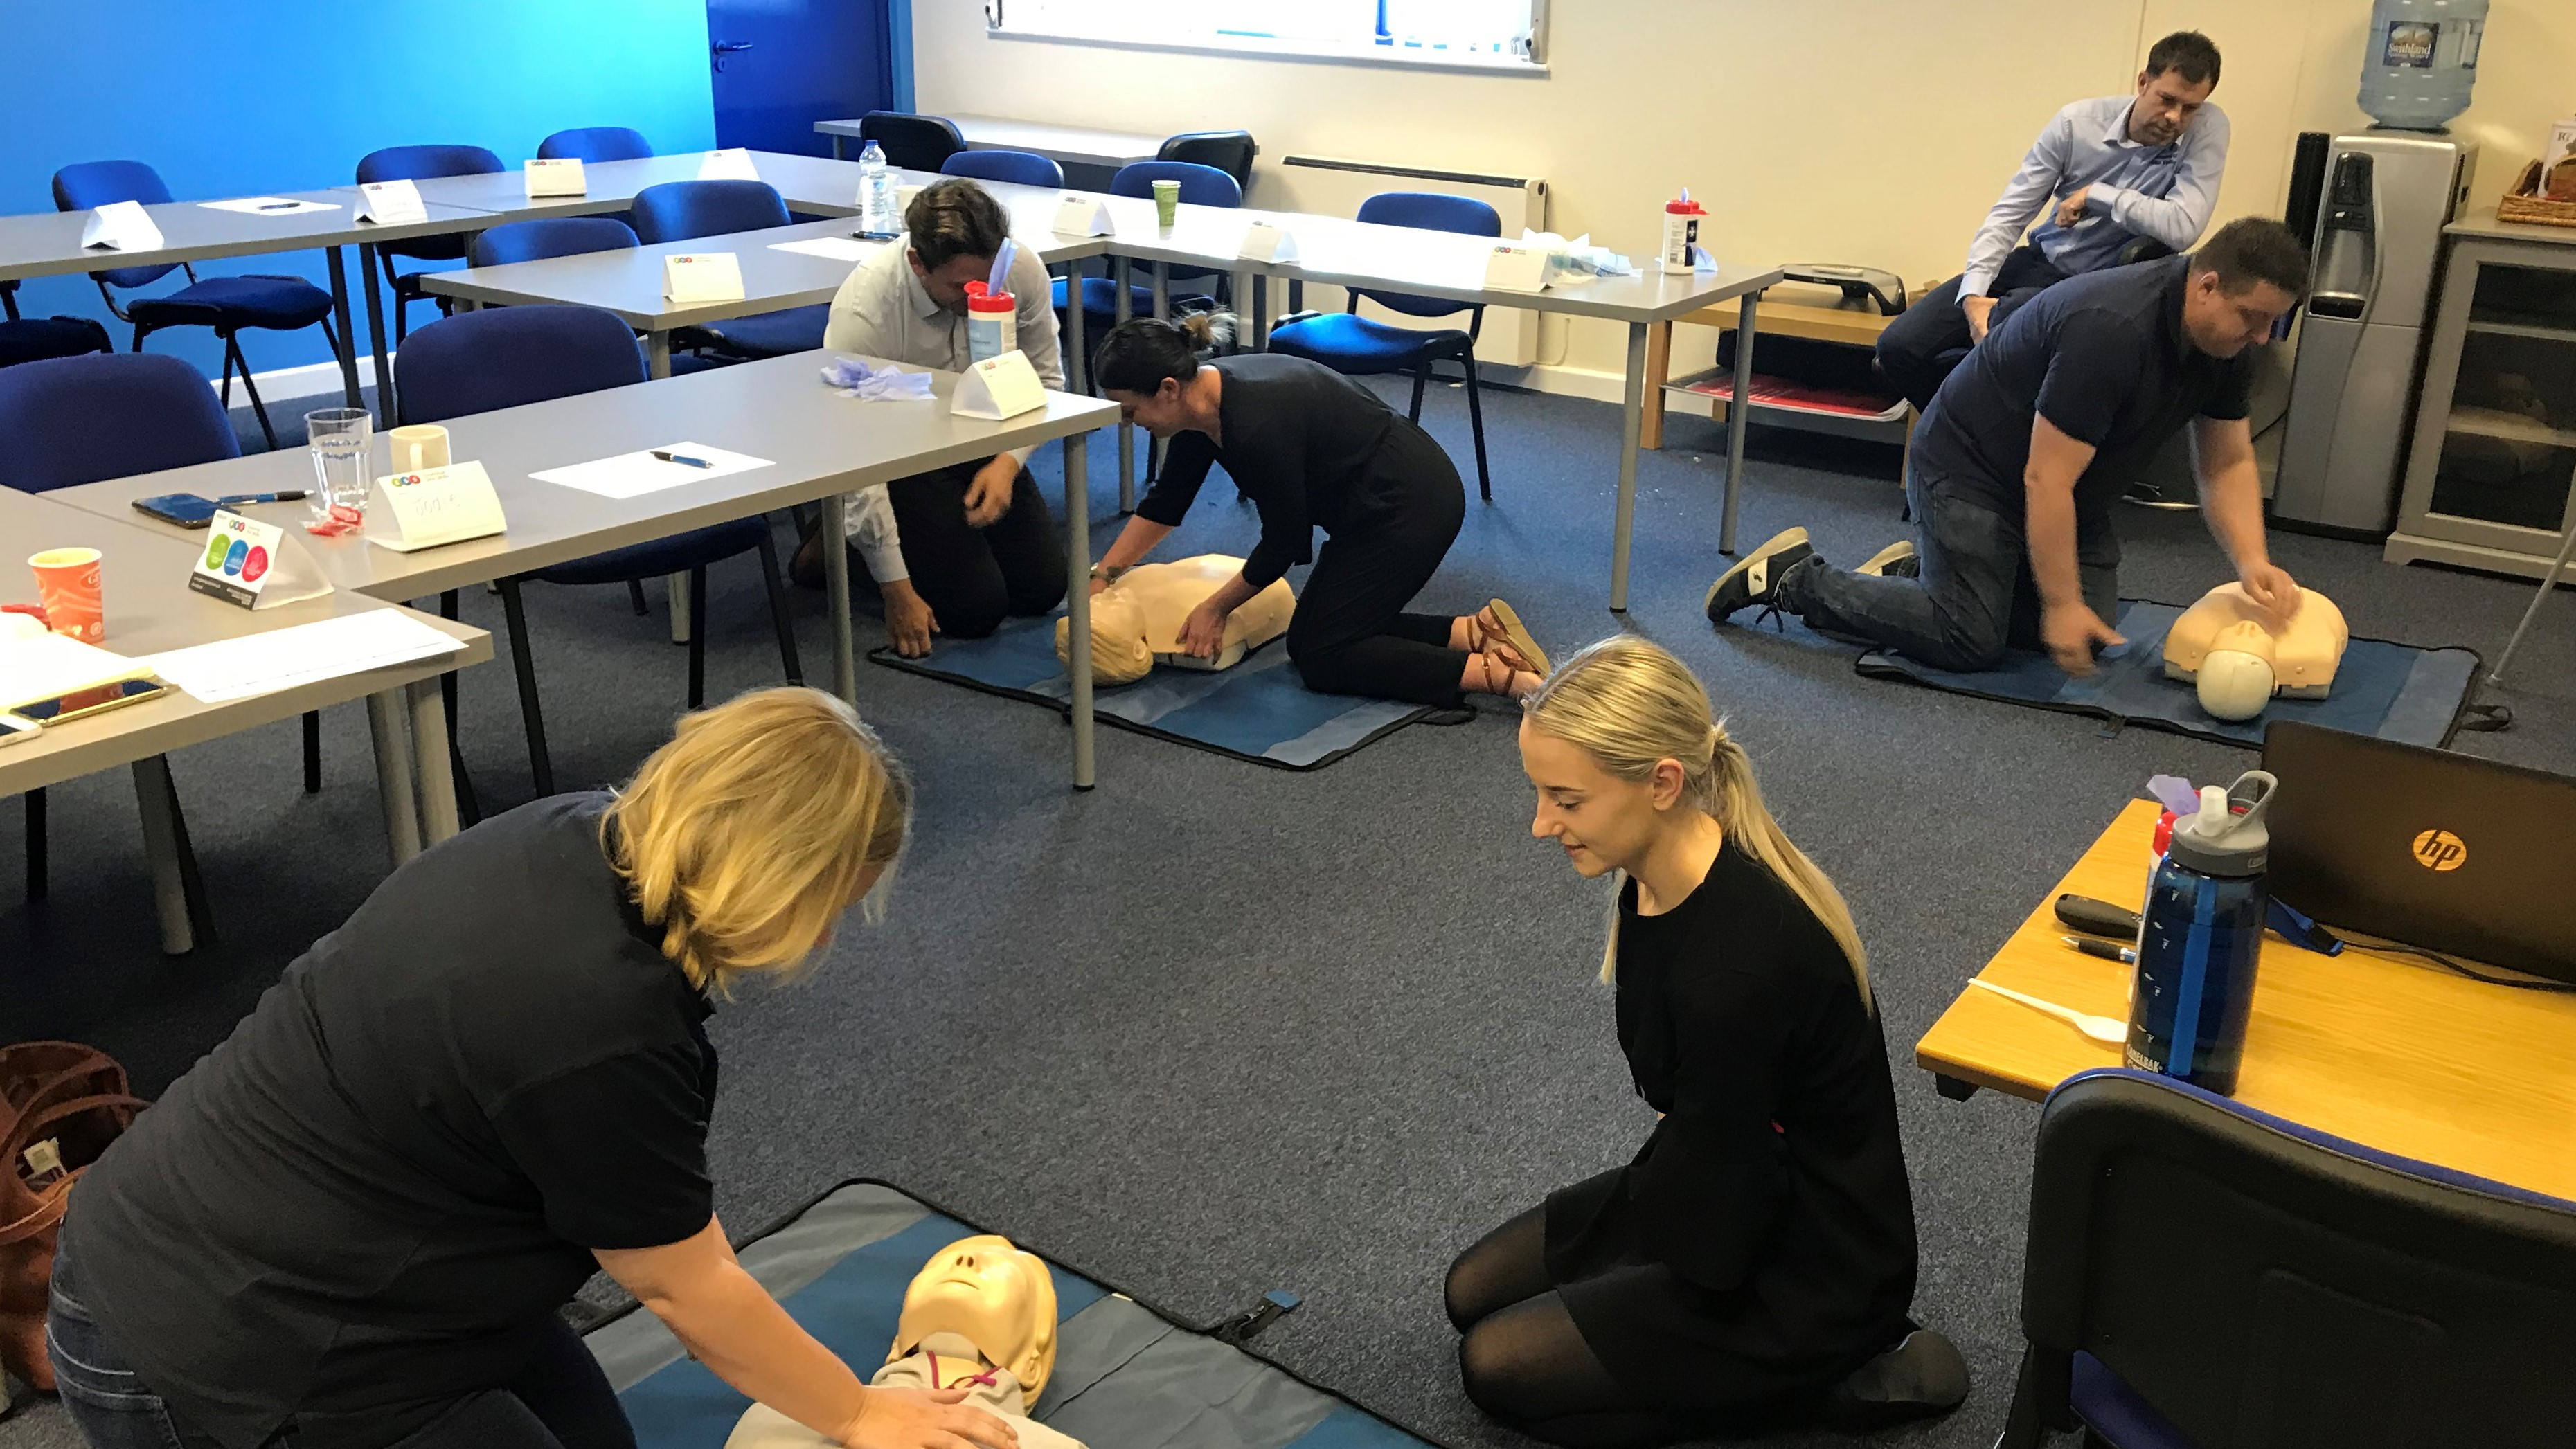 image shows First Aid Training